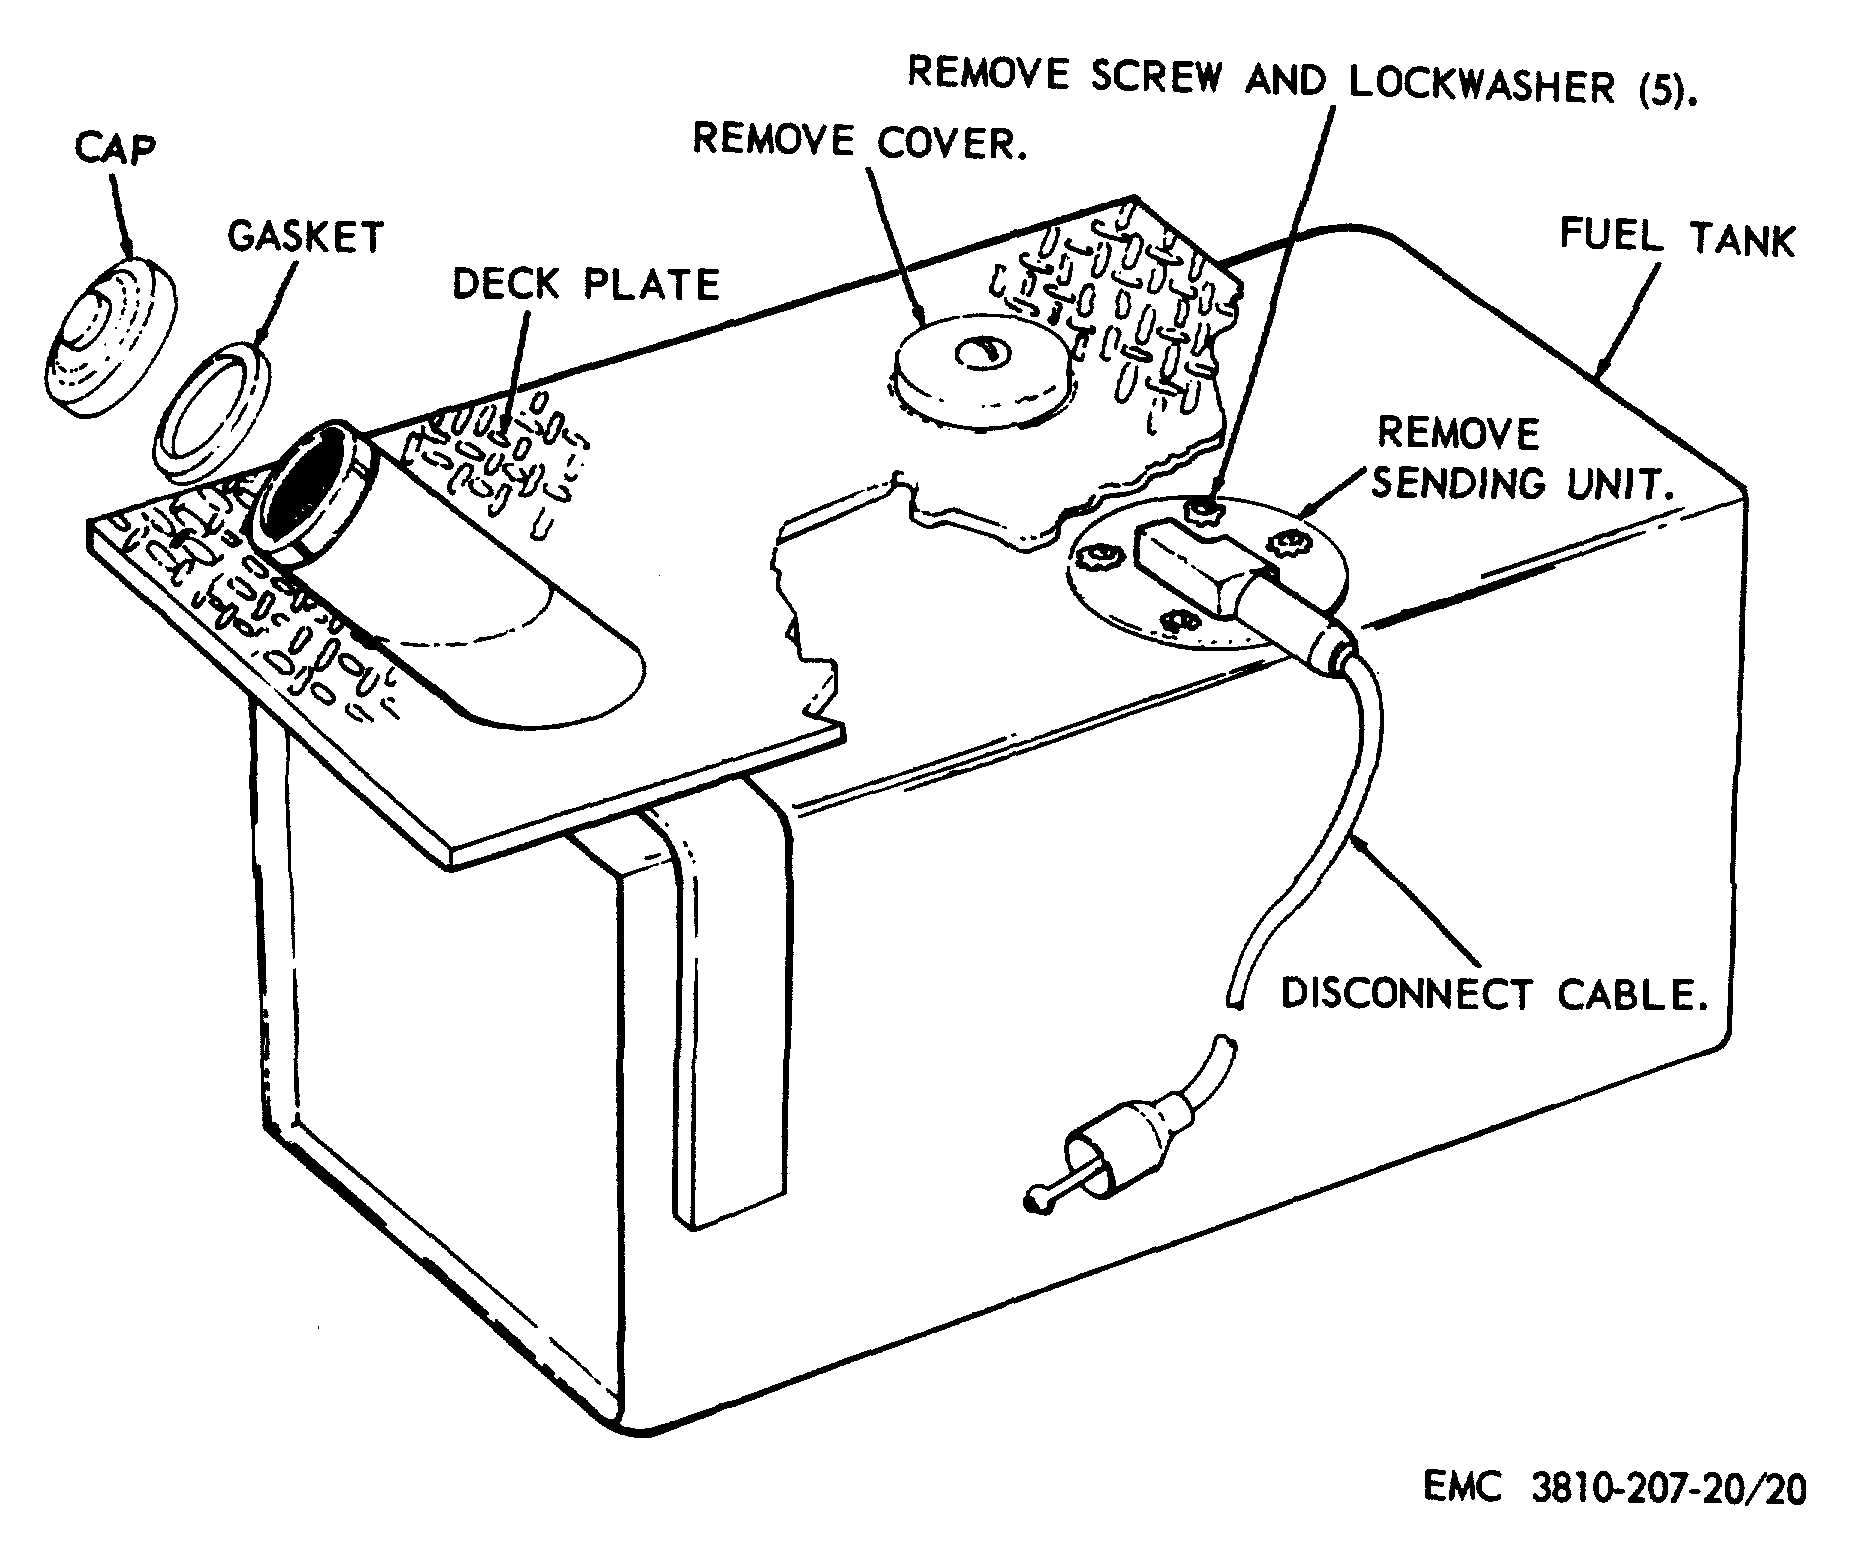 fuel tank sending unit wiring diagram 1972 c10 fuel tank 1968 mustang fuel  sending unit wiring diagram universal fuel sending unit wiring diagram